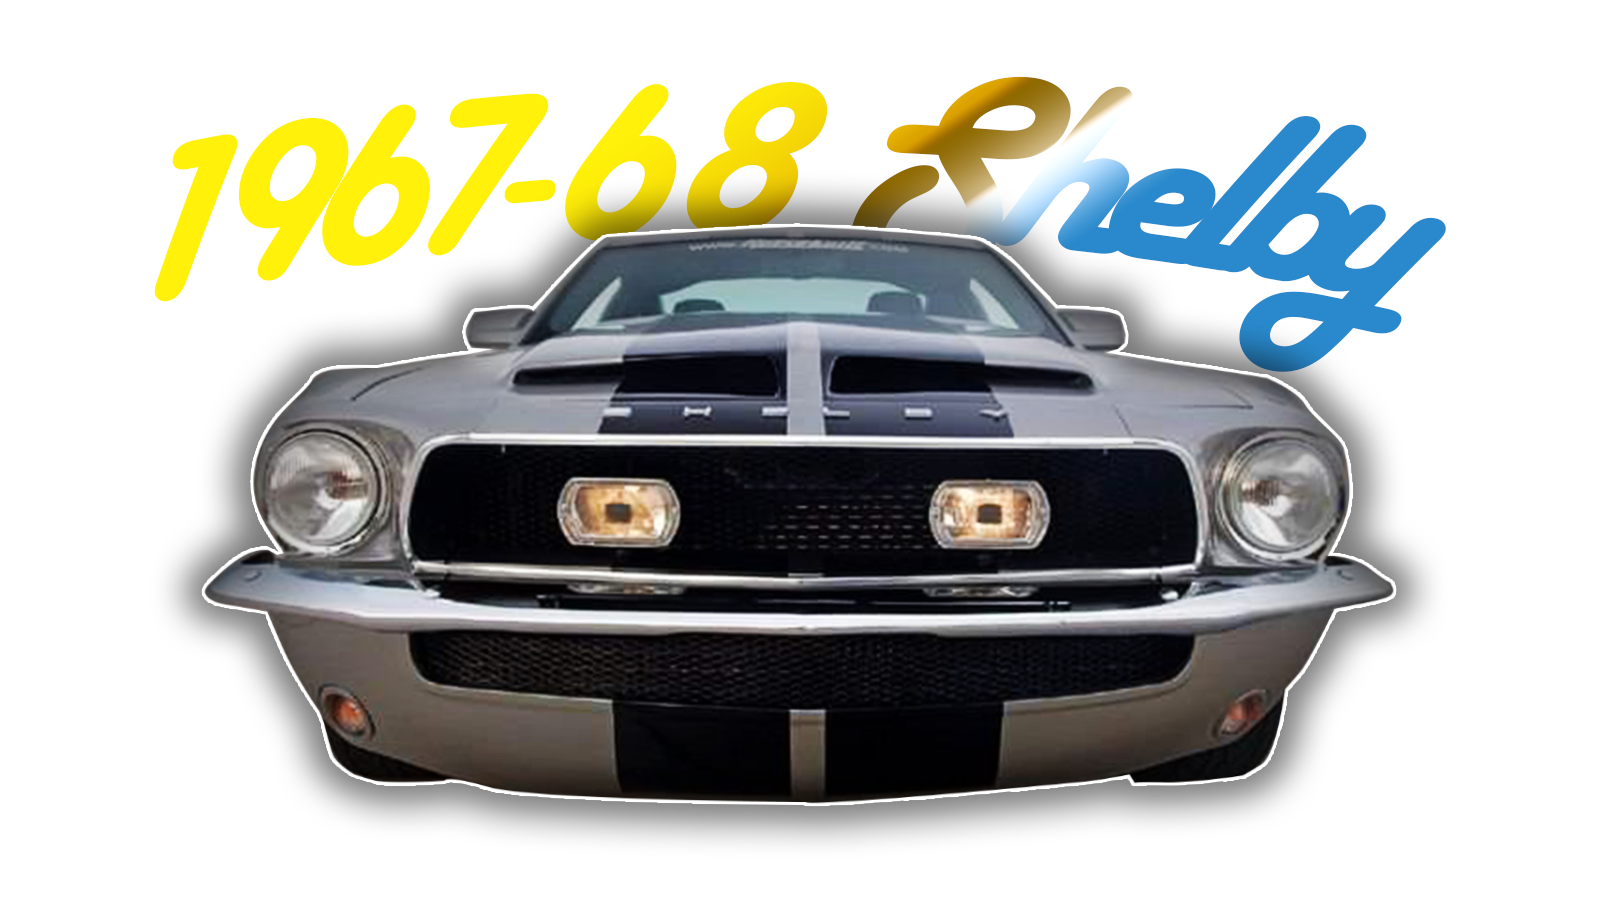 Vehicle Page Image 67-68Shelby.png